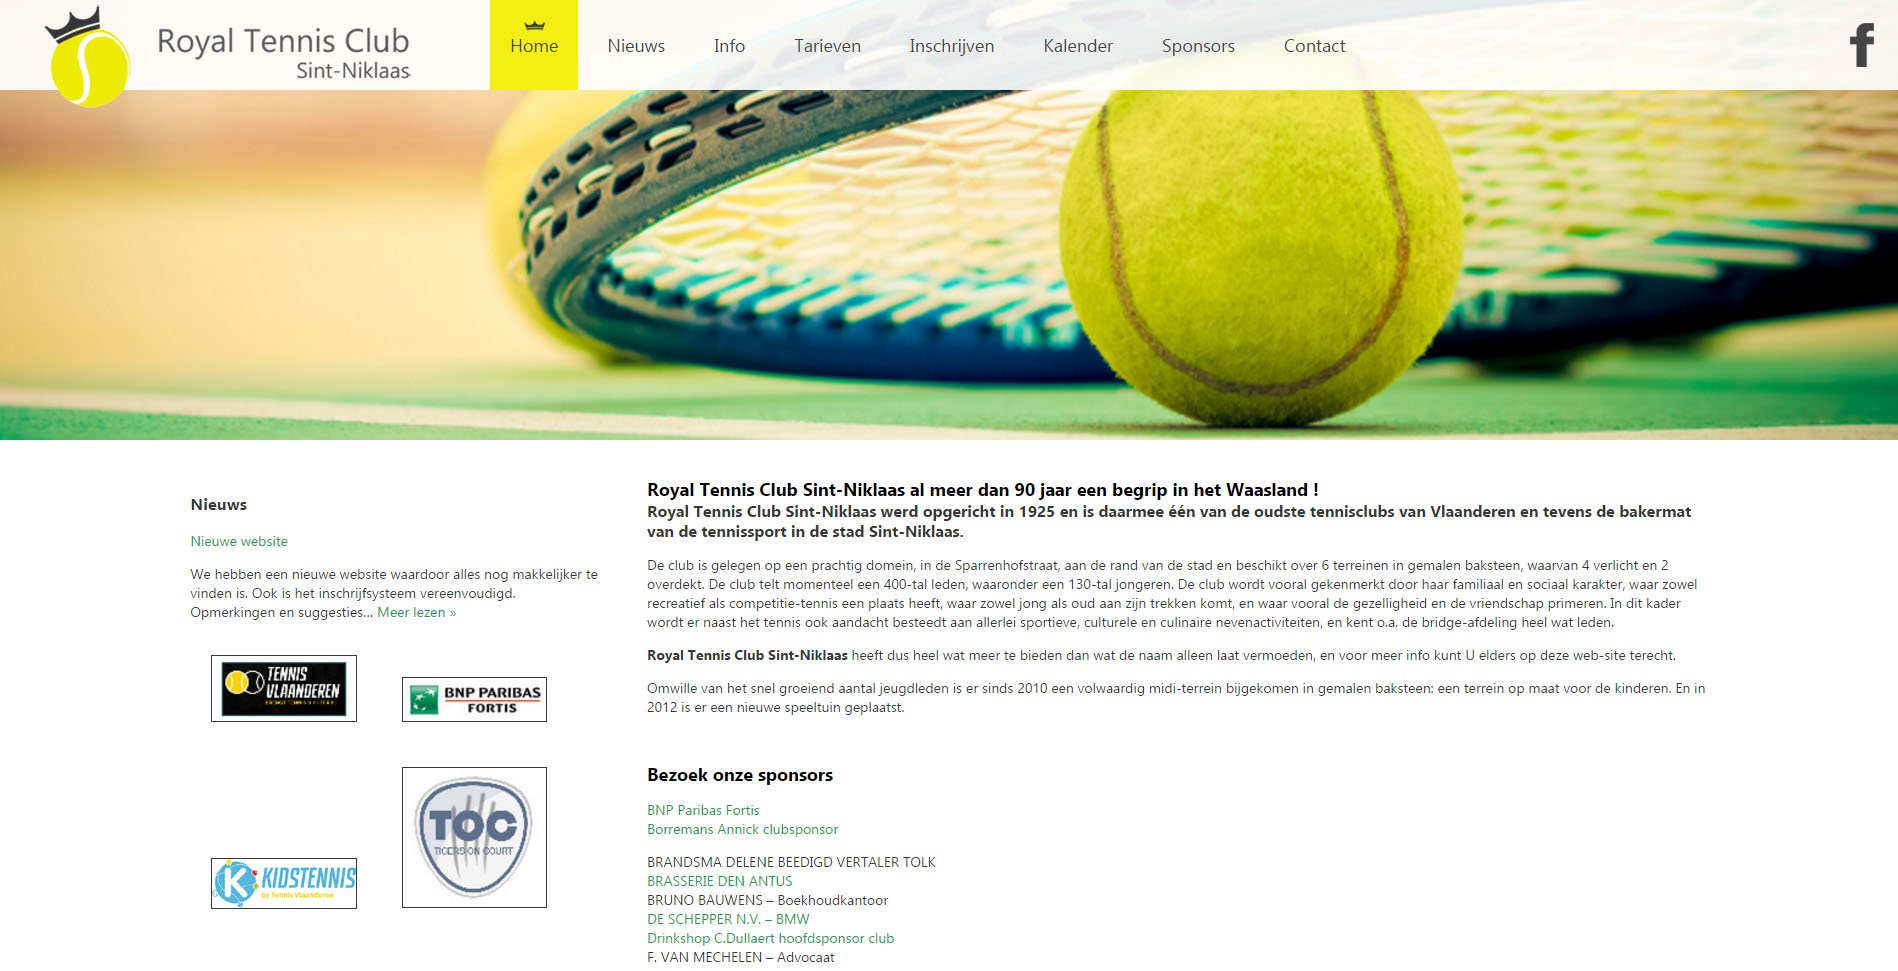 Royal Tennis Club Sint-Niklaas